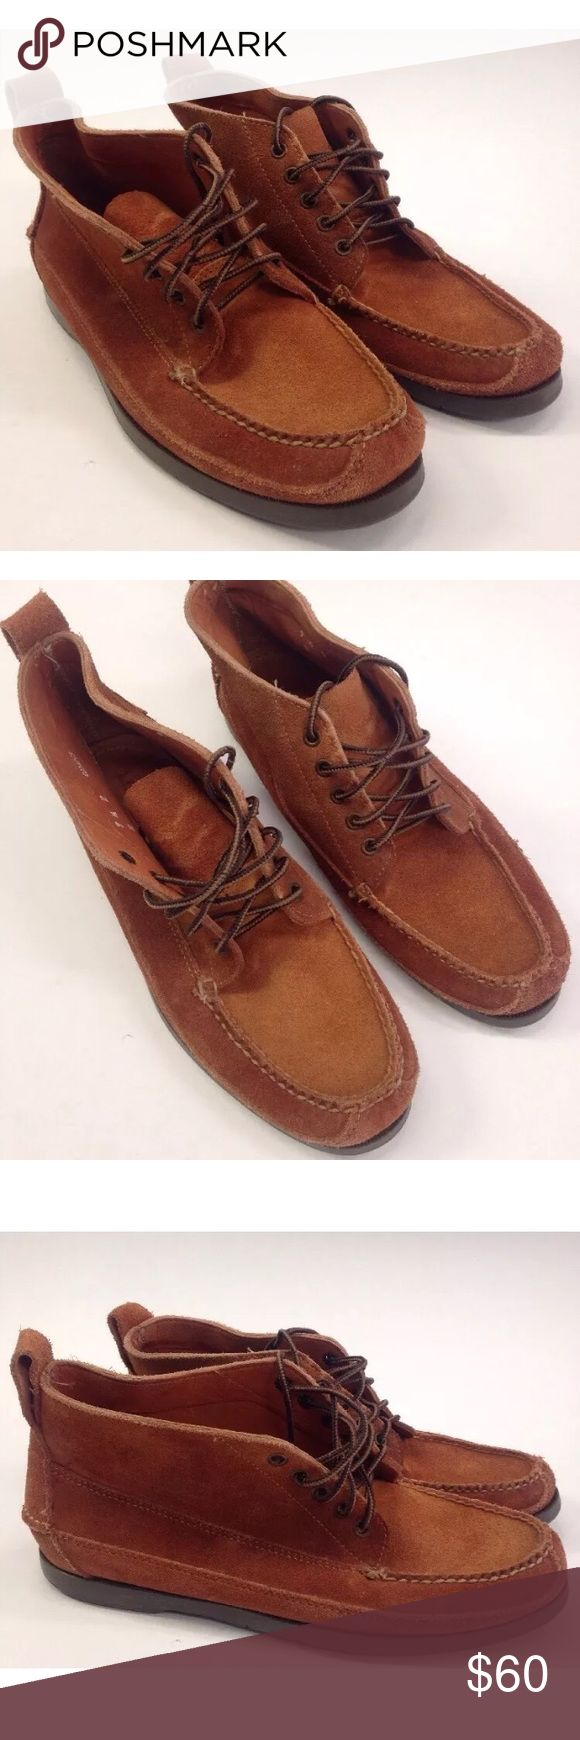 L.L BEAN SUEDE CHUKKA BOOTS NICE PAIR OF L.L BEAN CHUKKA BOOTS  MEN SIZE 9.5  BROWN SUEDE LACE UP LIGHTLY WORN. NICE & CLEAN  SEE PICTURES FOR CONDITION L.L. Bean Shoes Chukka Boots